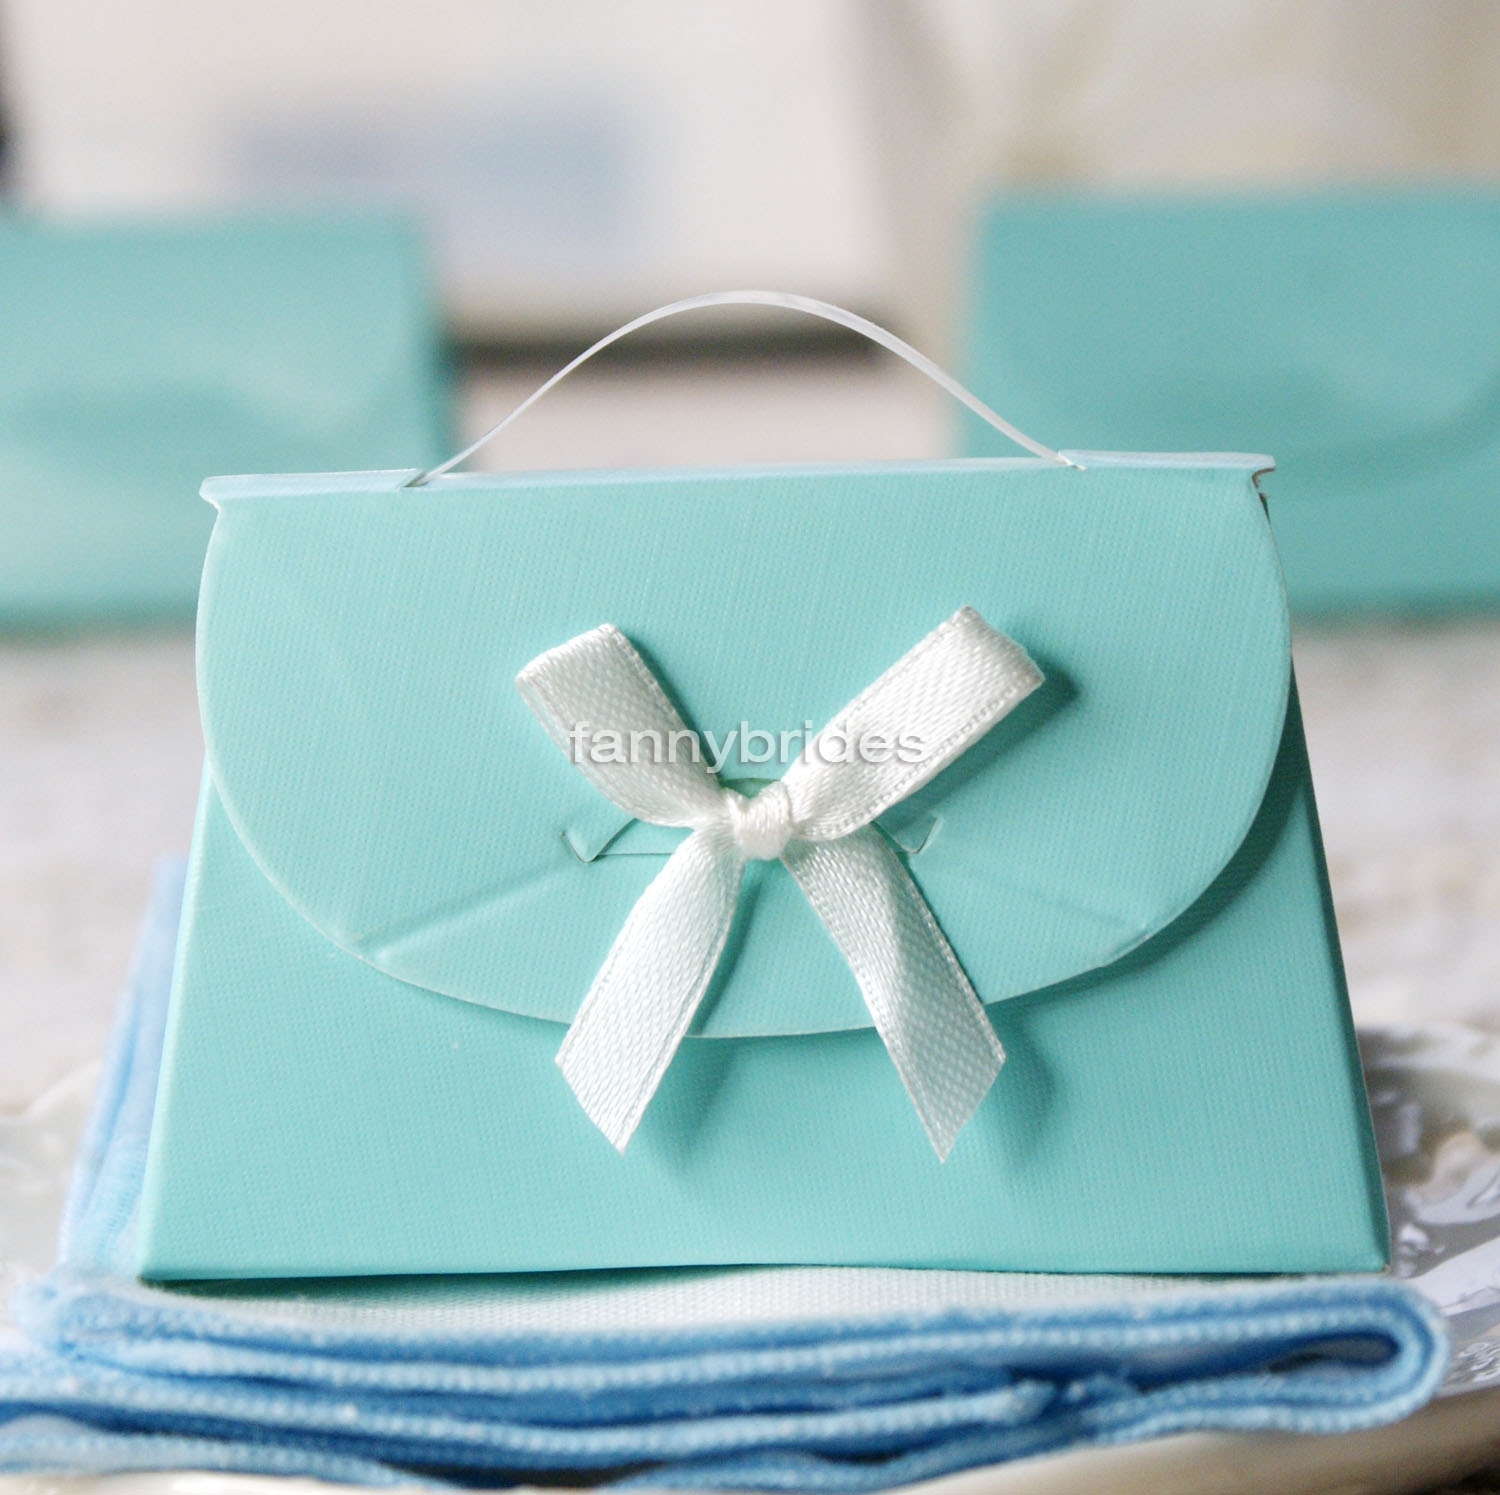 Wedding Gift For Bride Tiffany : Tiffany Wedding Gifts With Small Design And White Ribbon